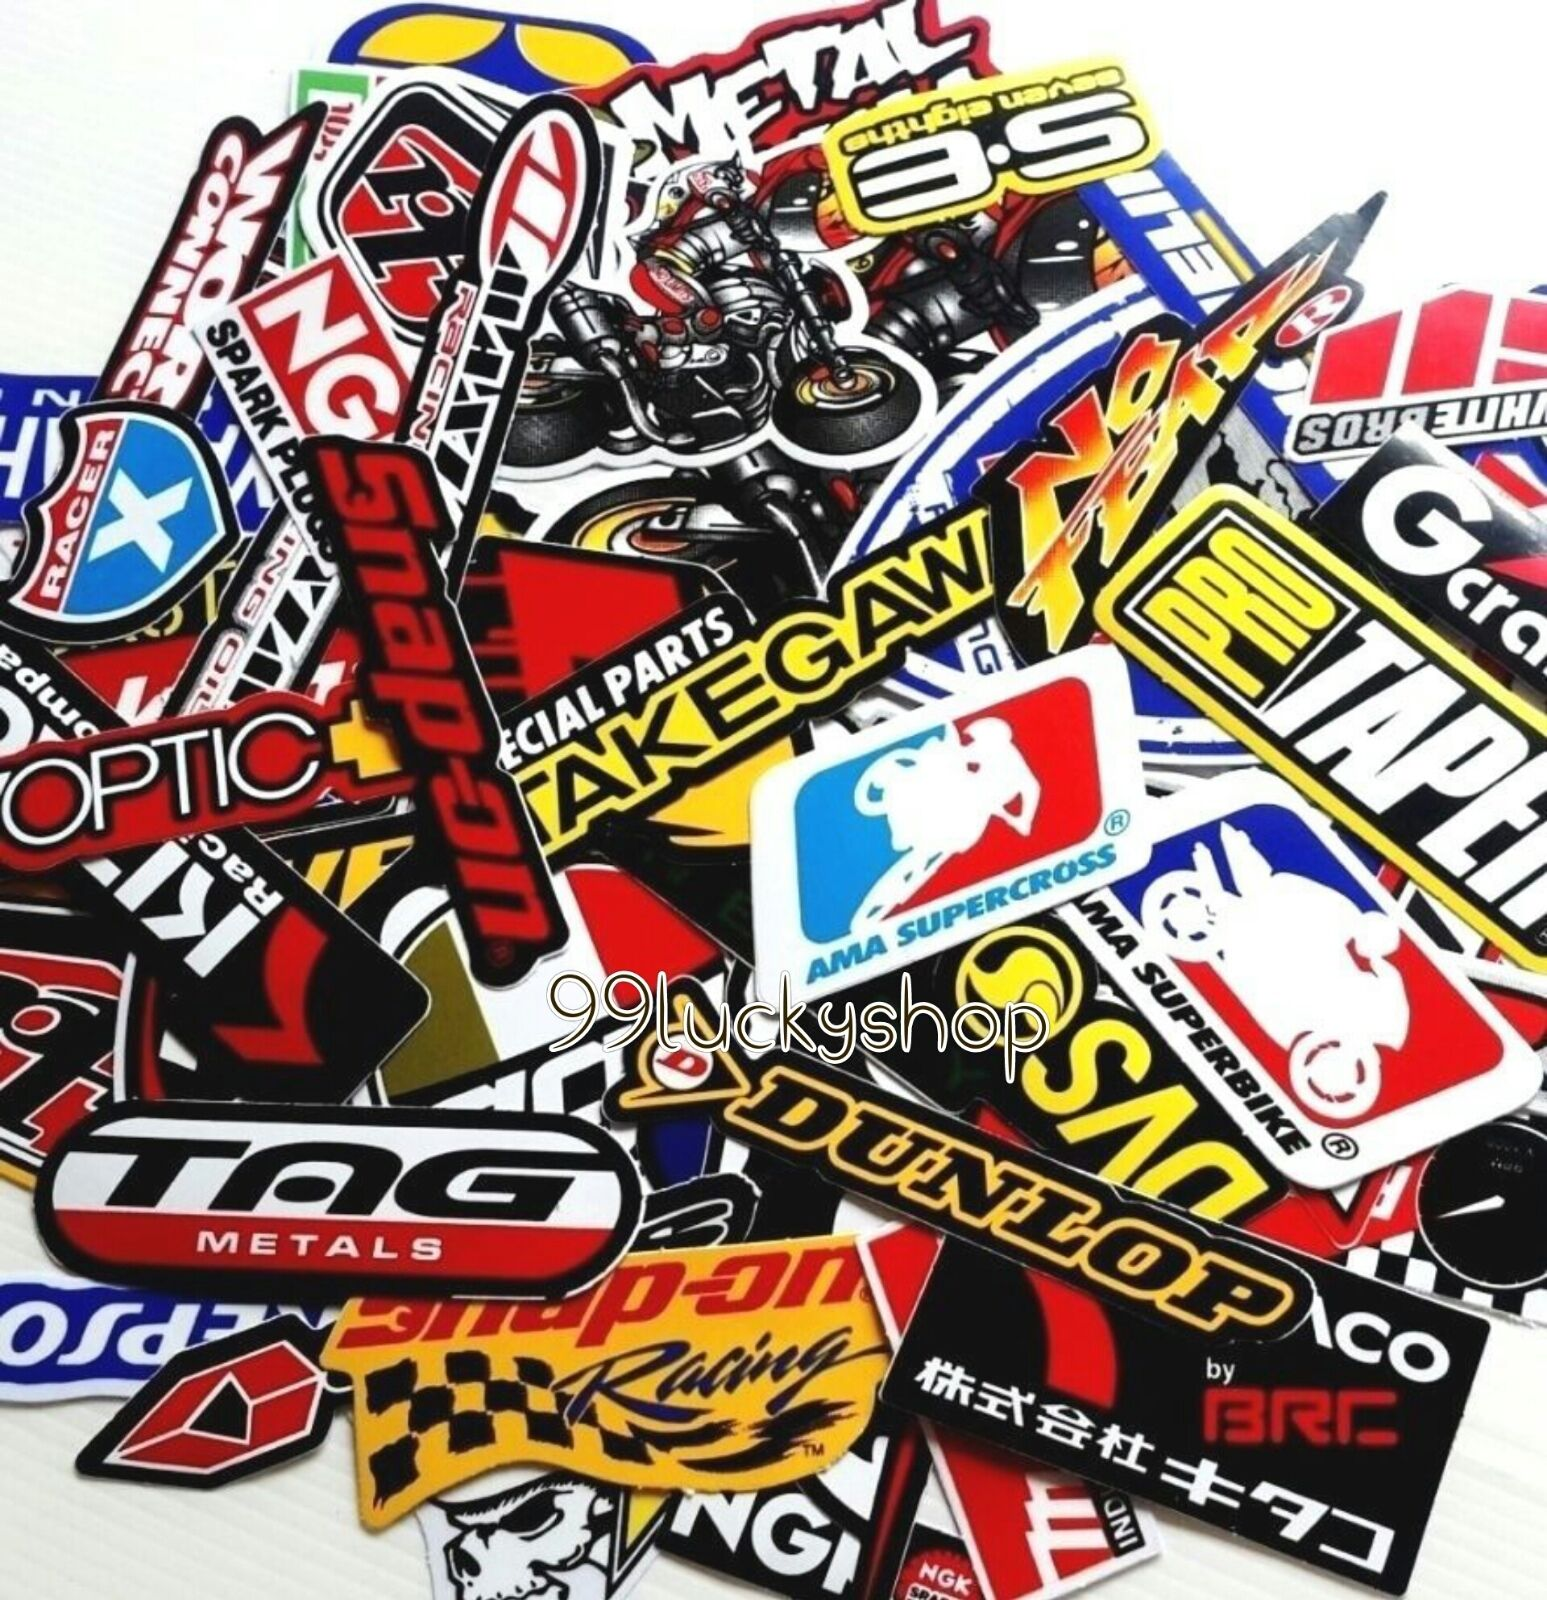 50 Mixed Random Stickers Motocross Motorcycle Car ATV Racing Bike Helmet Decal